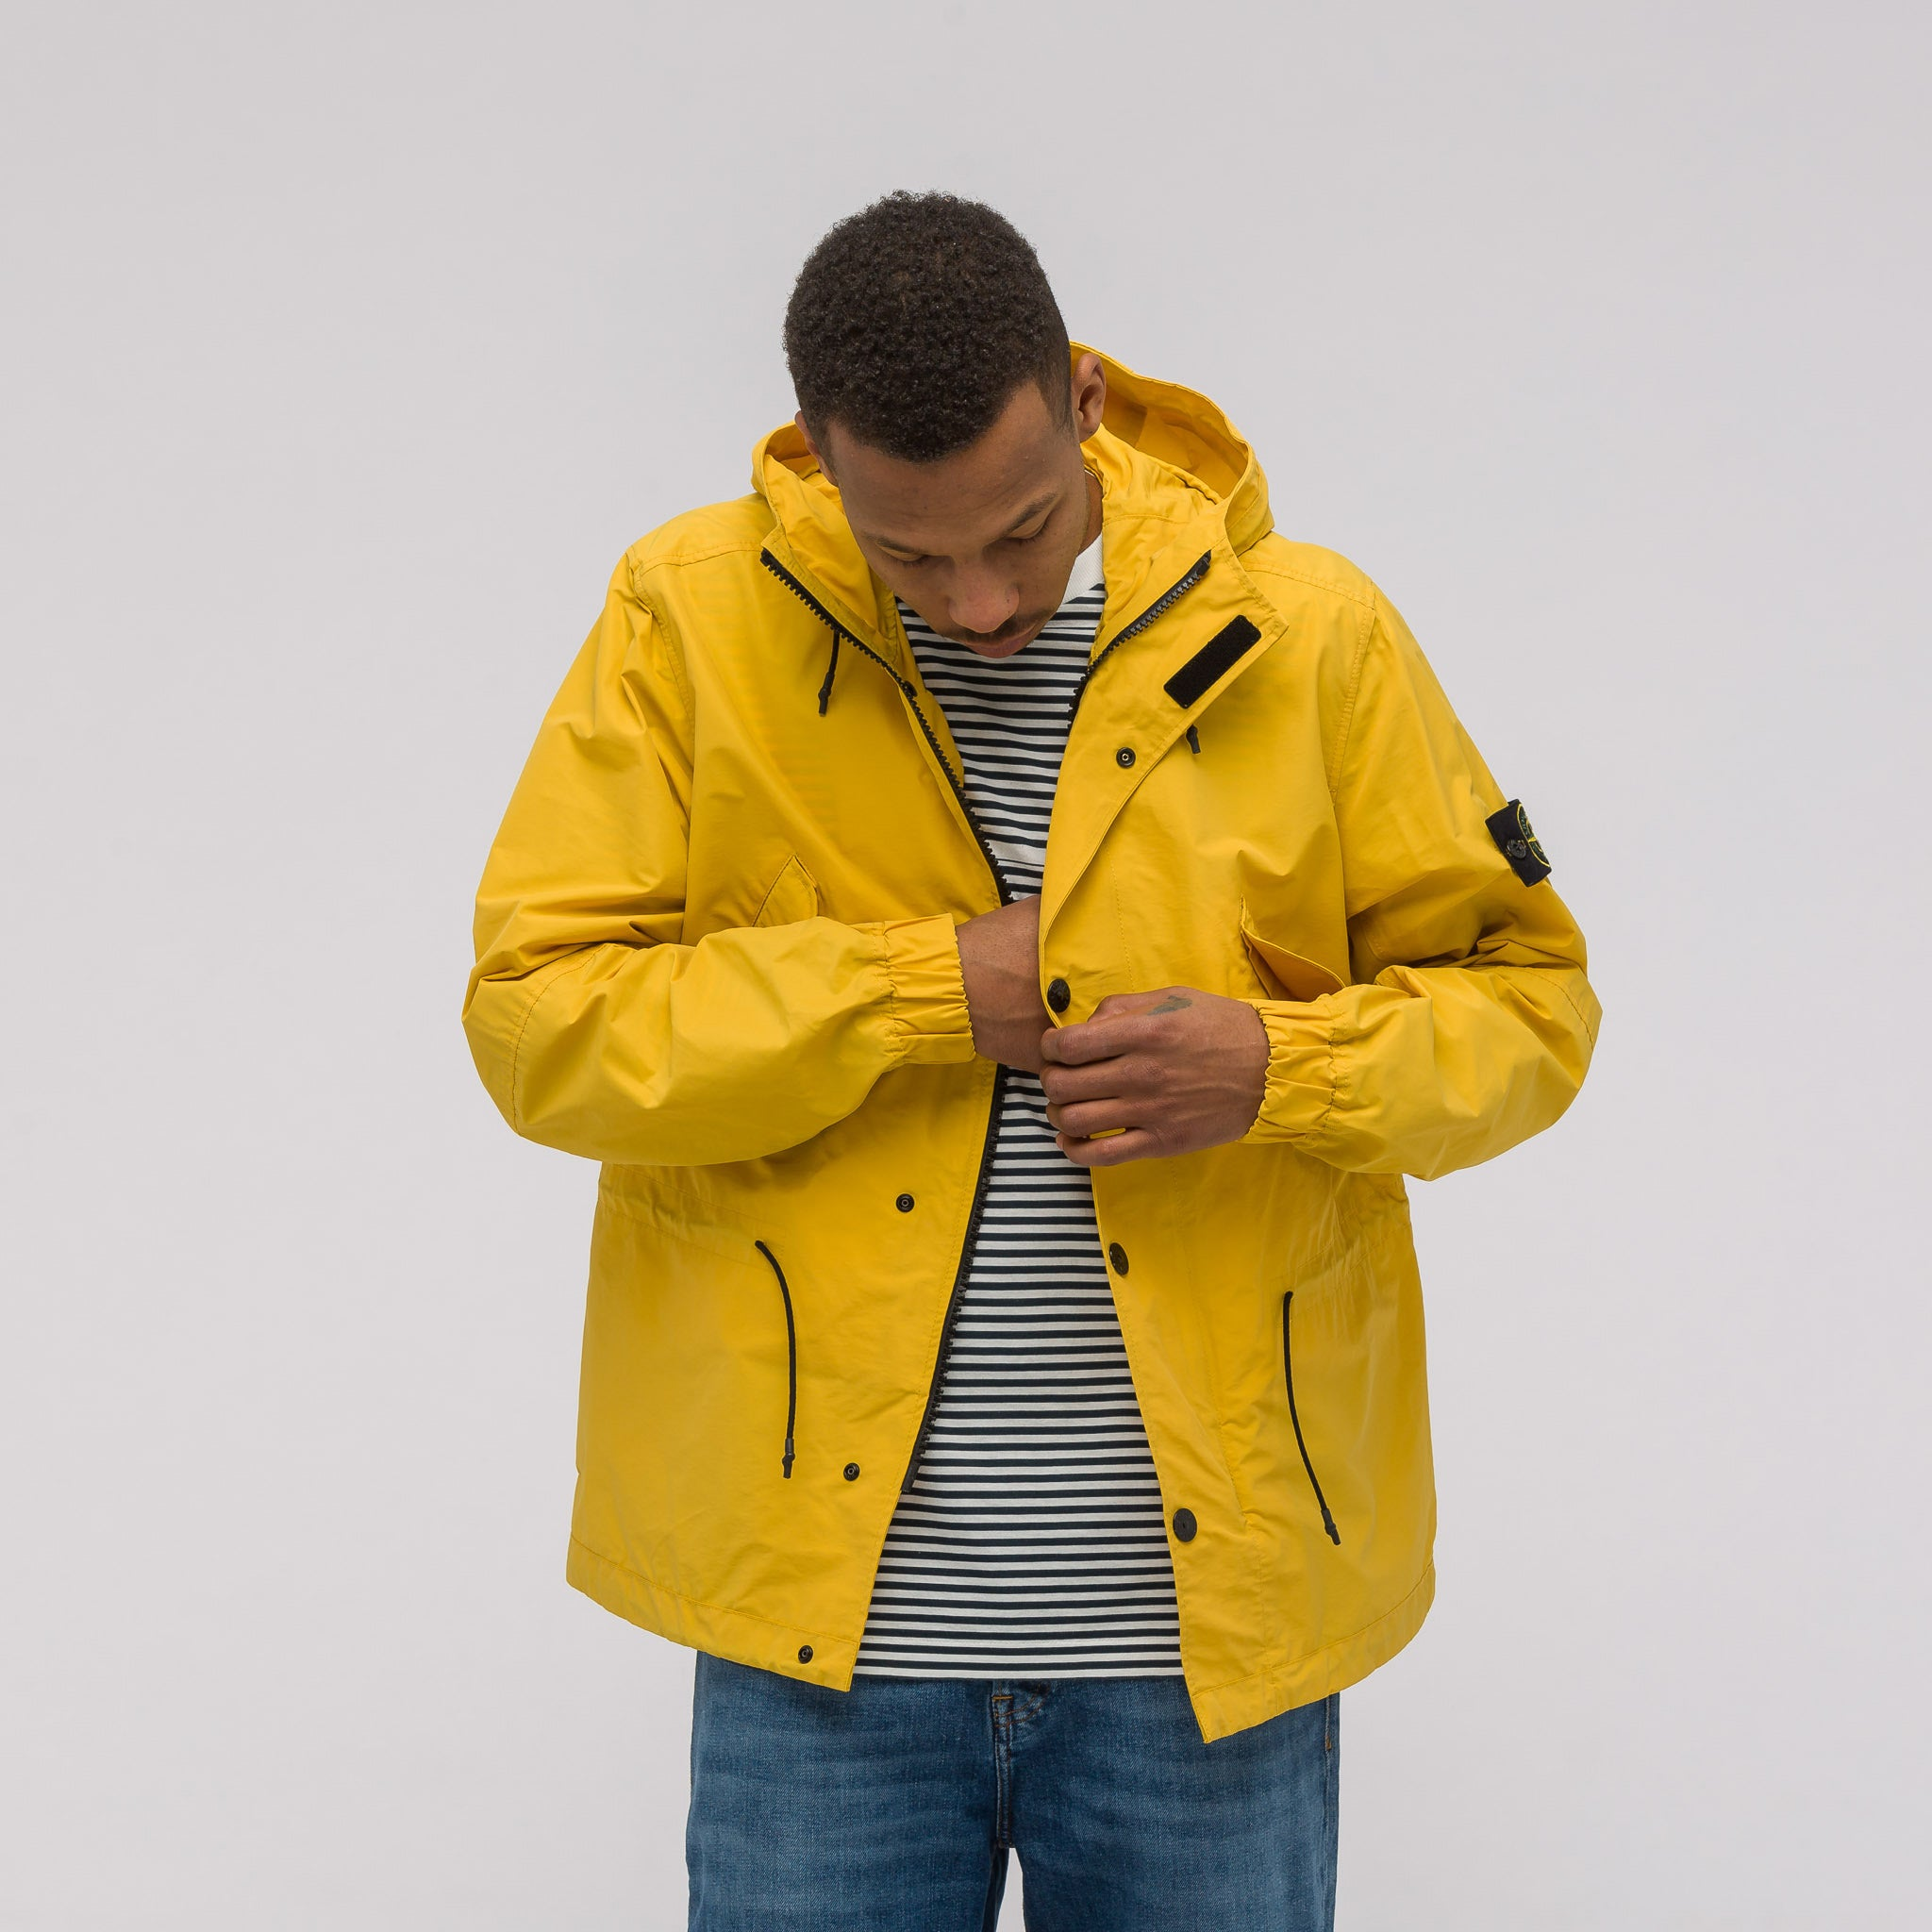 41322 Micro Reps Jacket in Yellow